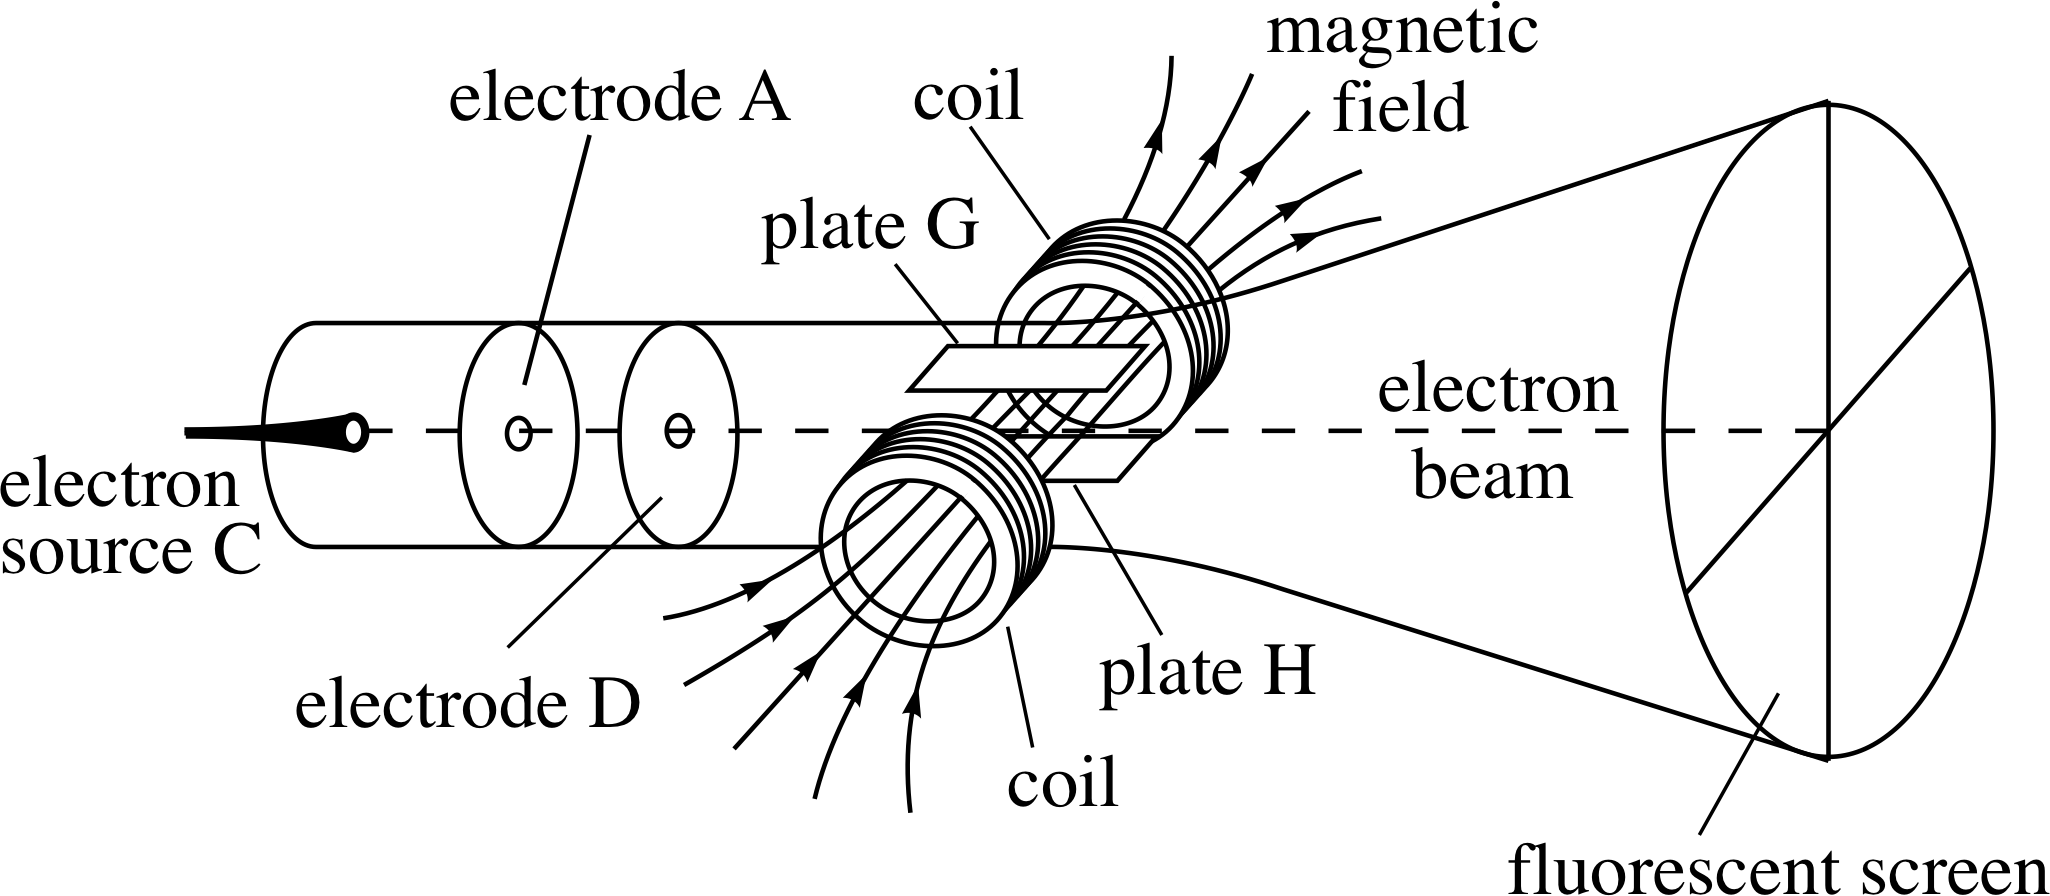 Pplato Flap Phys 43 Electromagnetic Forces Magnetic Electric Wiring Series Or Parallel Moreover Circuit Figure 18 Schematic